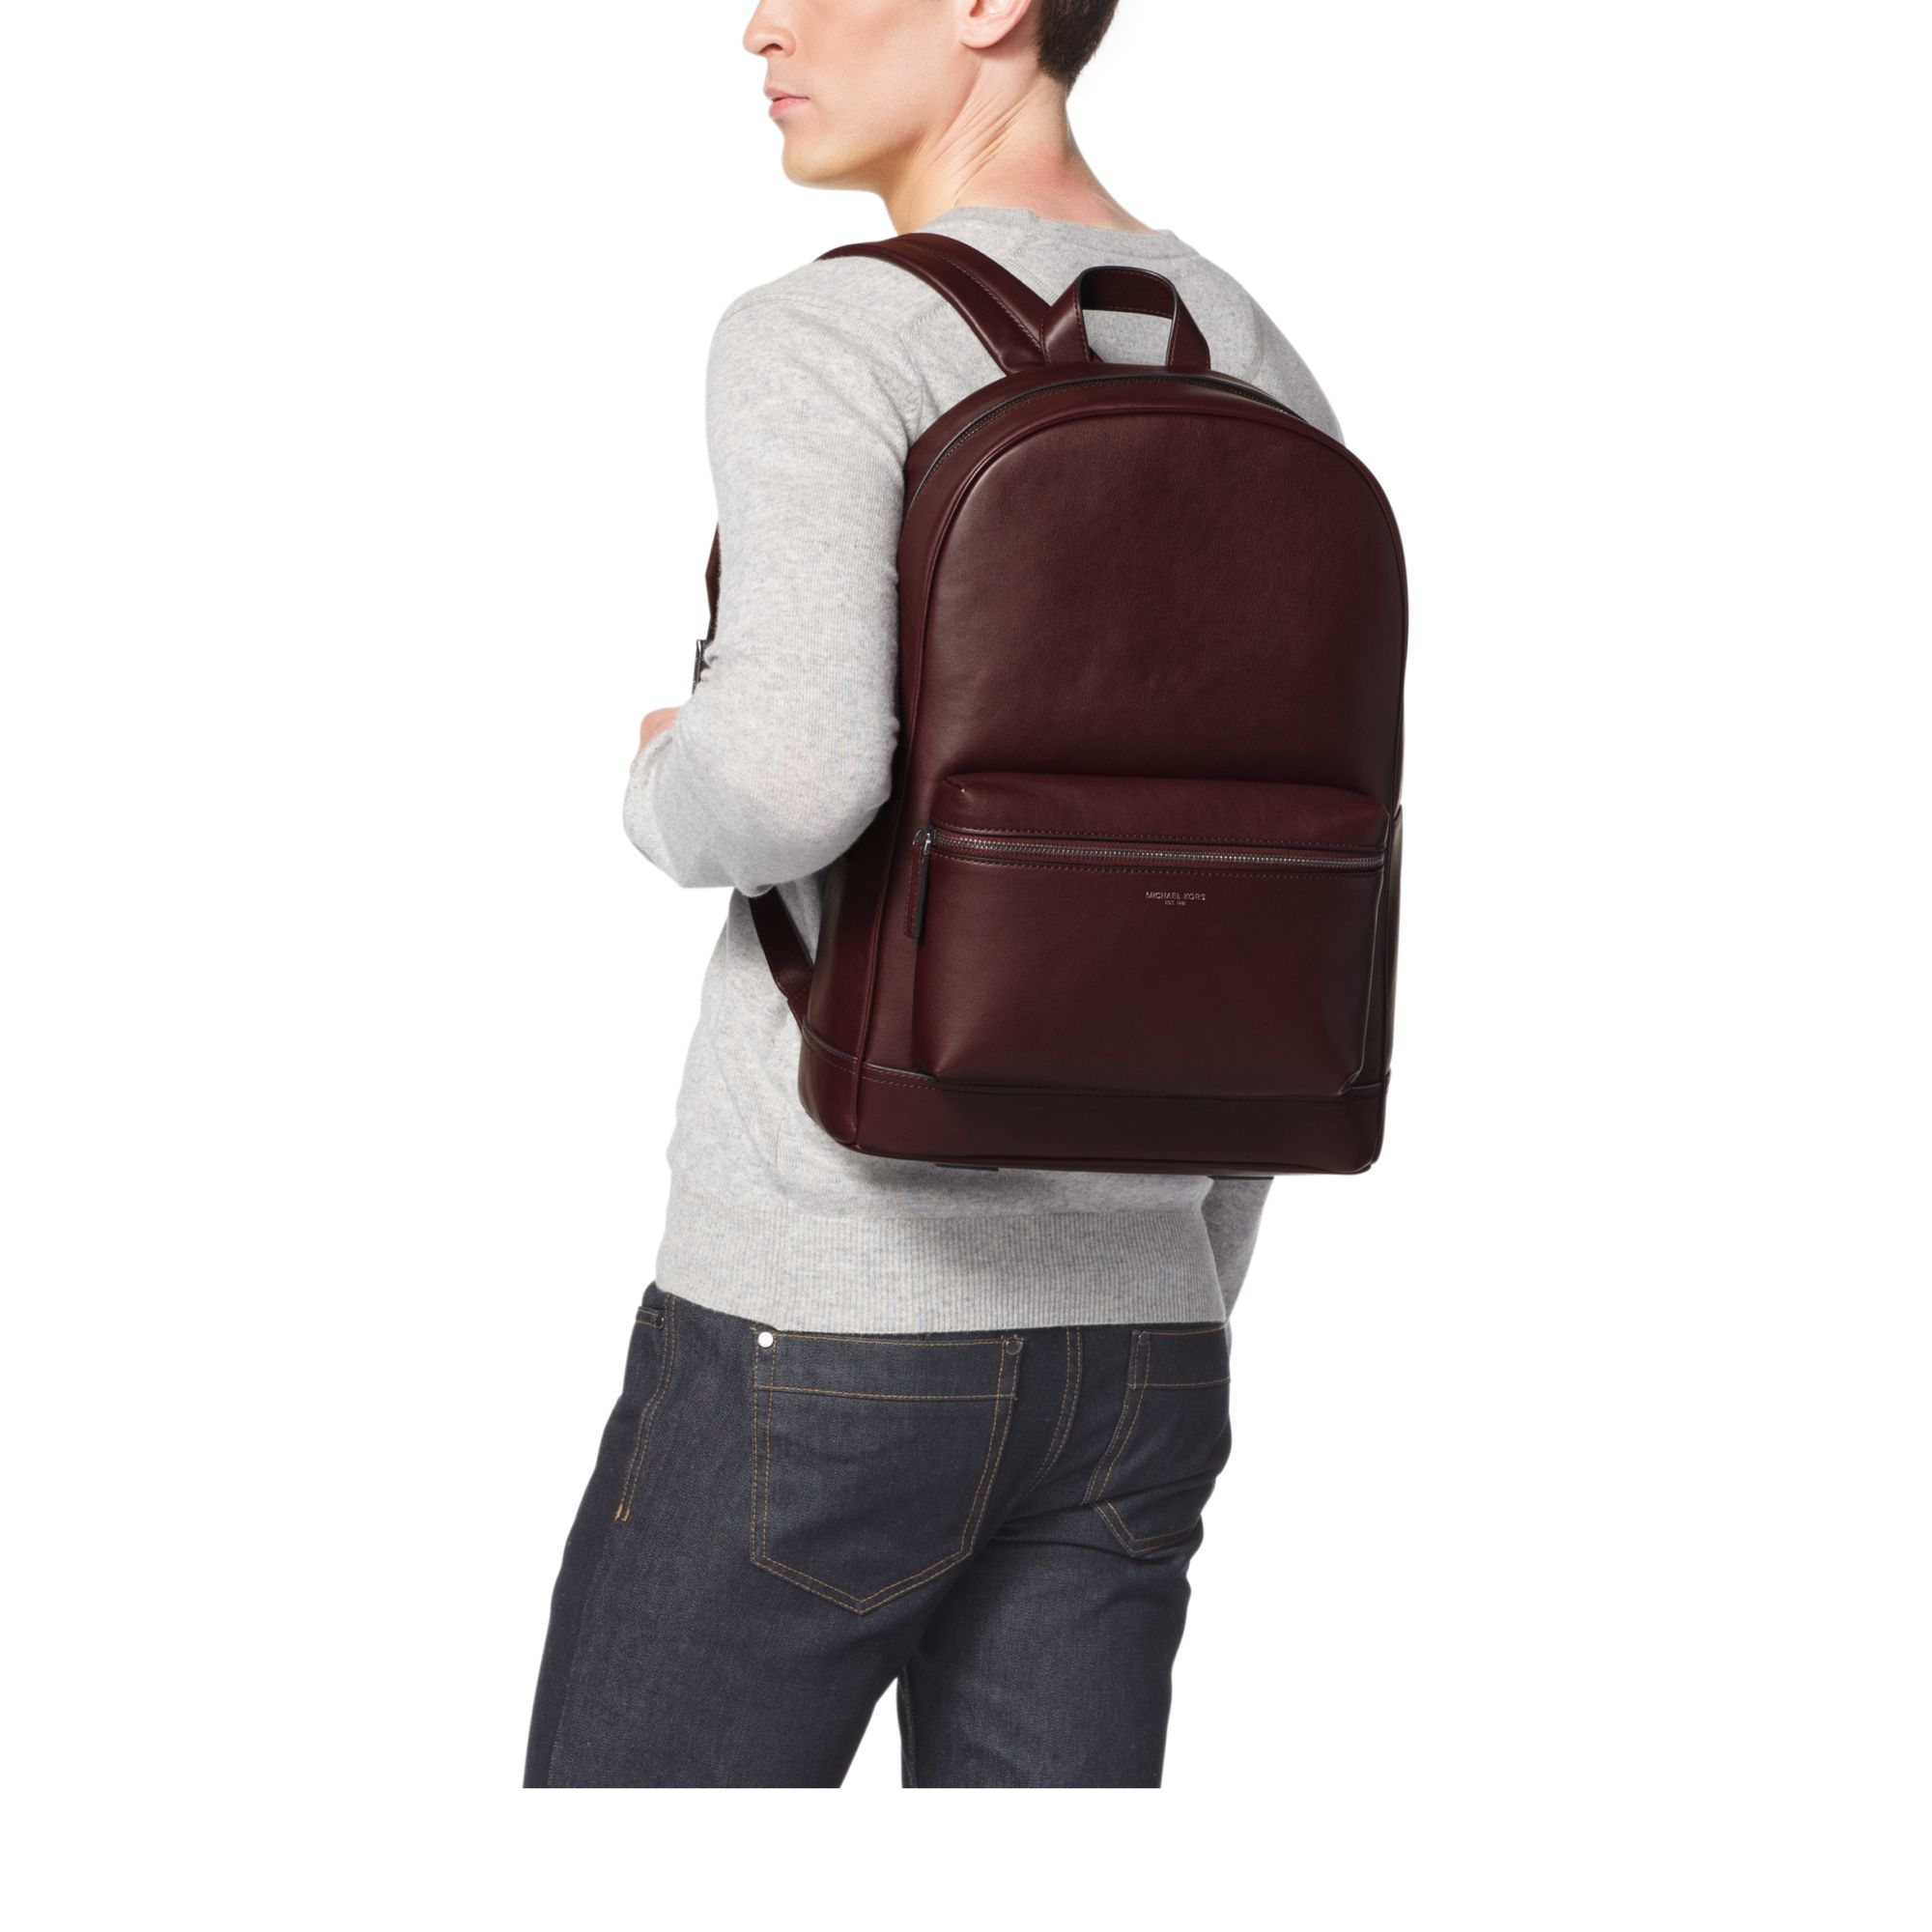 61aea060782f1 Lyst - Michael Kors Dylan Leather Backpack in Purple for Men